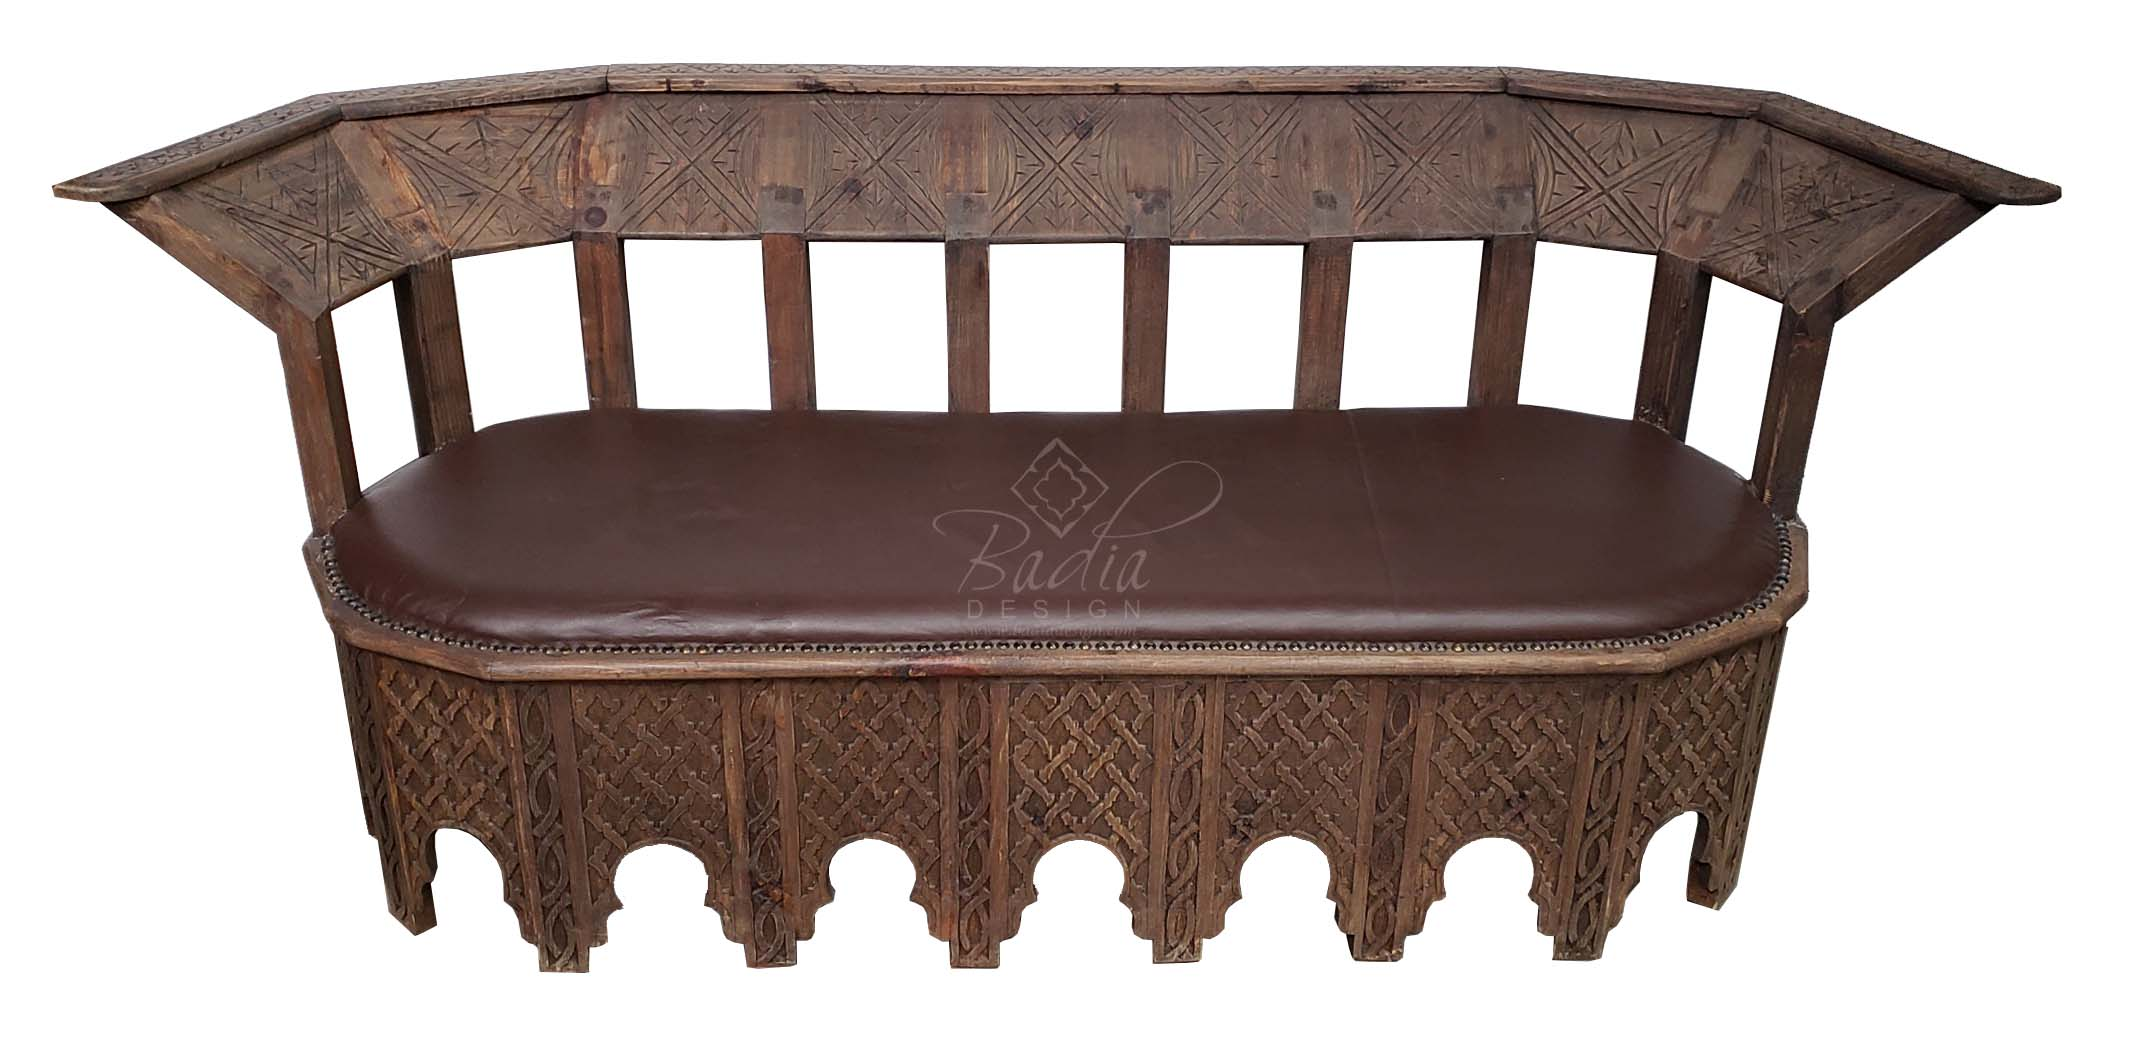 one-of-a-kind-moroccan-hand-carved-wooden-bench-cw-b015.jpg